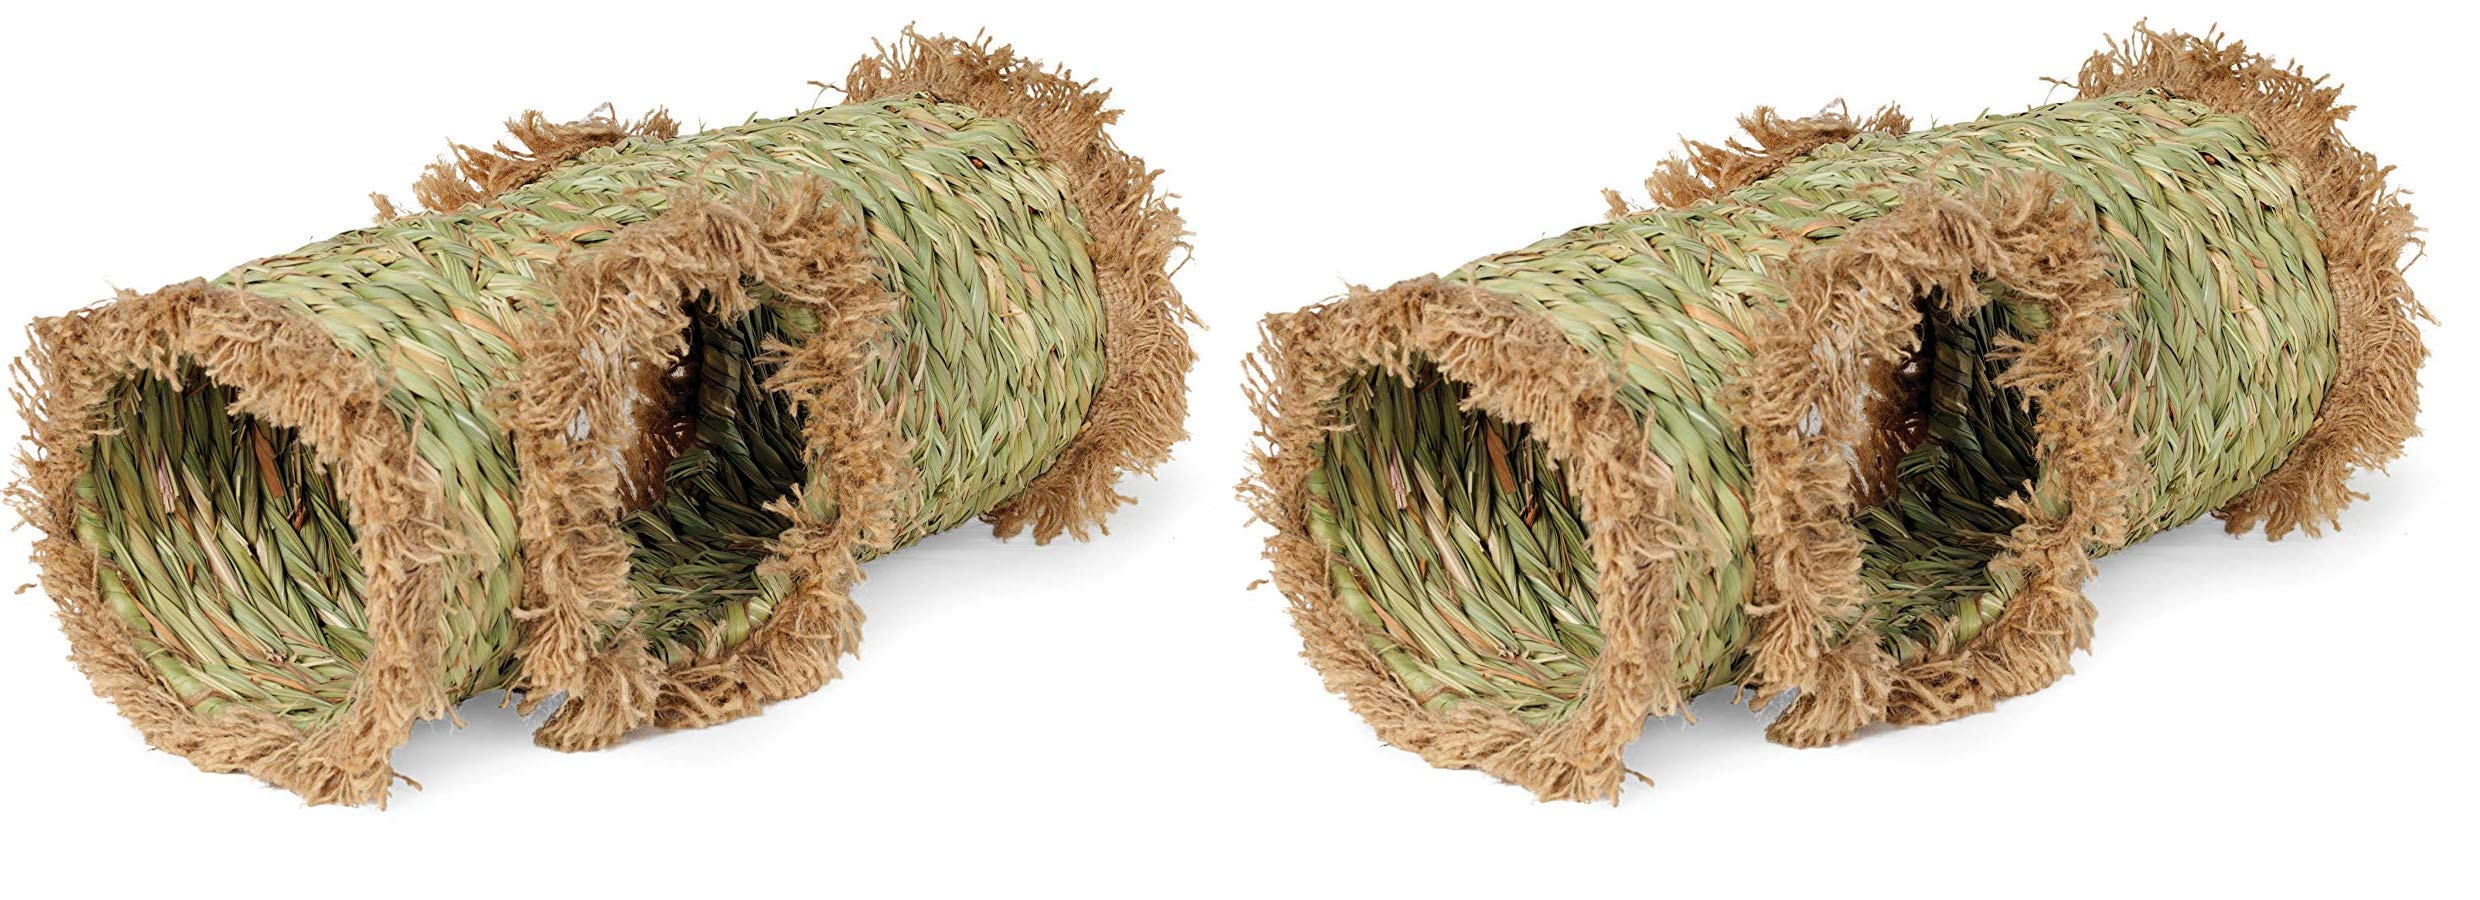 Prevue Hendryx 1098 Nature's Hideaway Grass Tunnel Toy (Тwo Рack) by Prevue Hendryx